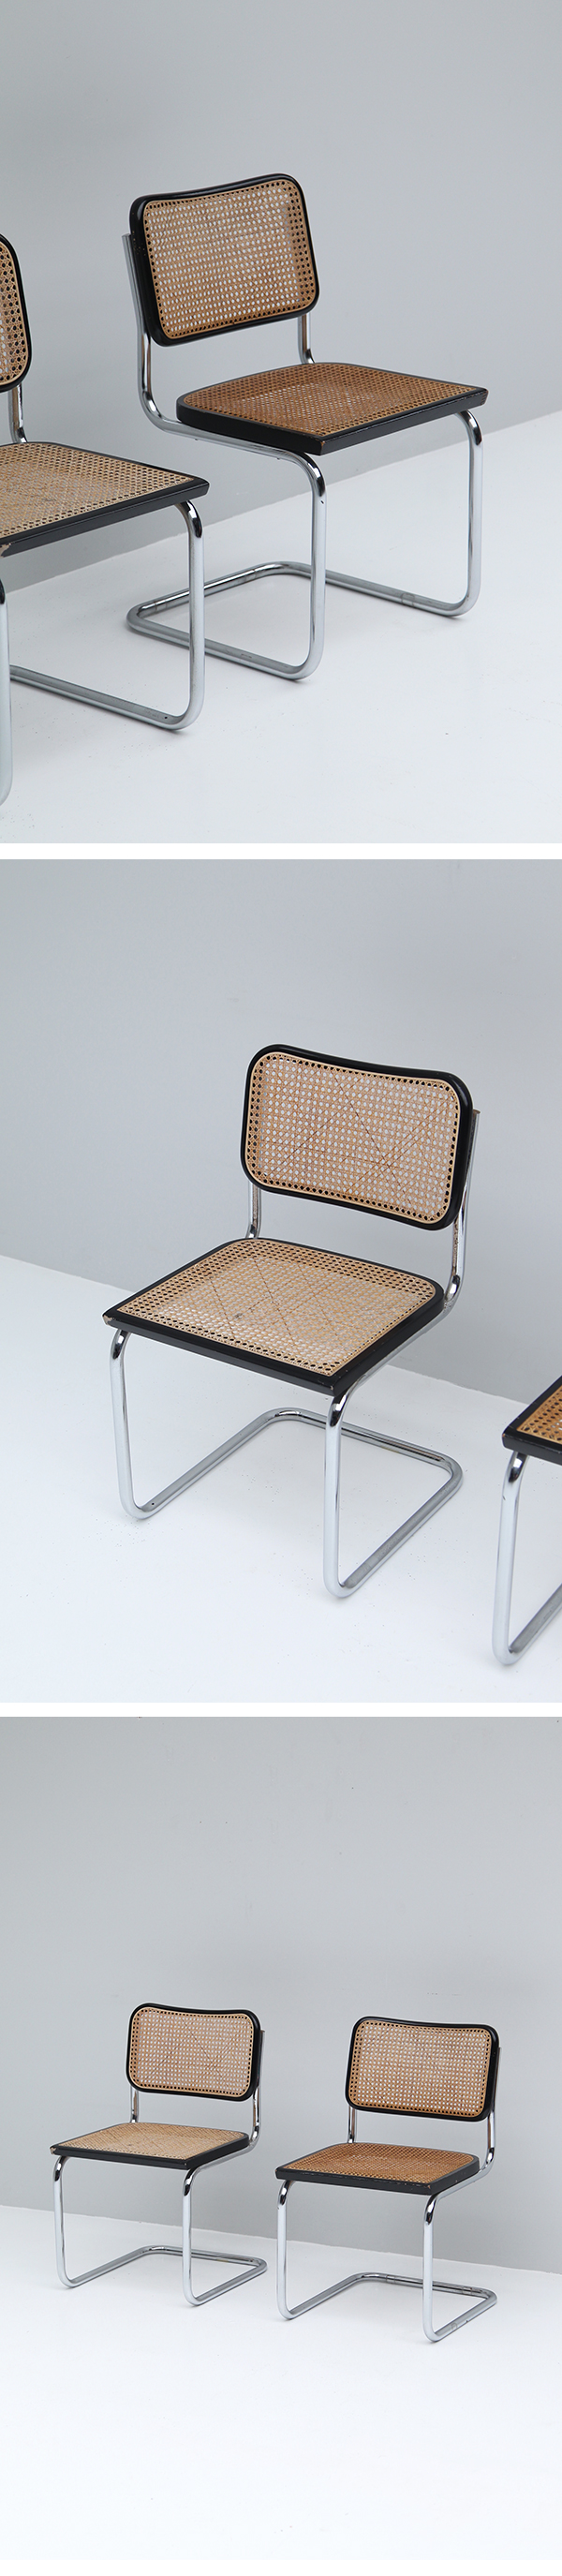 70s, Cantilever, Woven, Cane, Chrome, Dining, Chairs